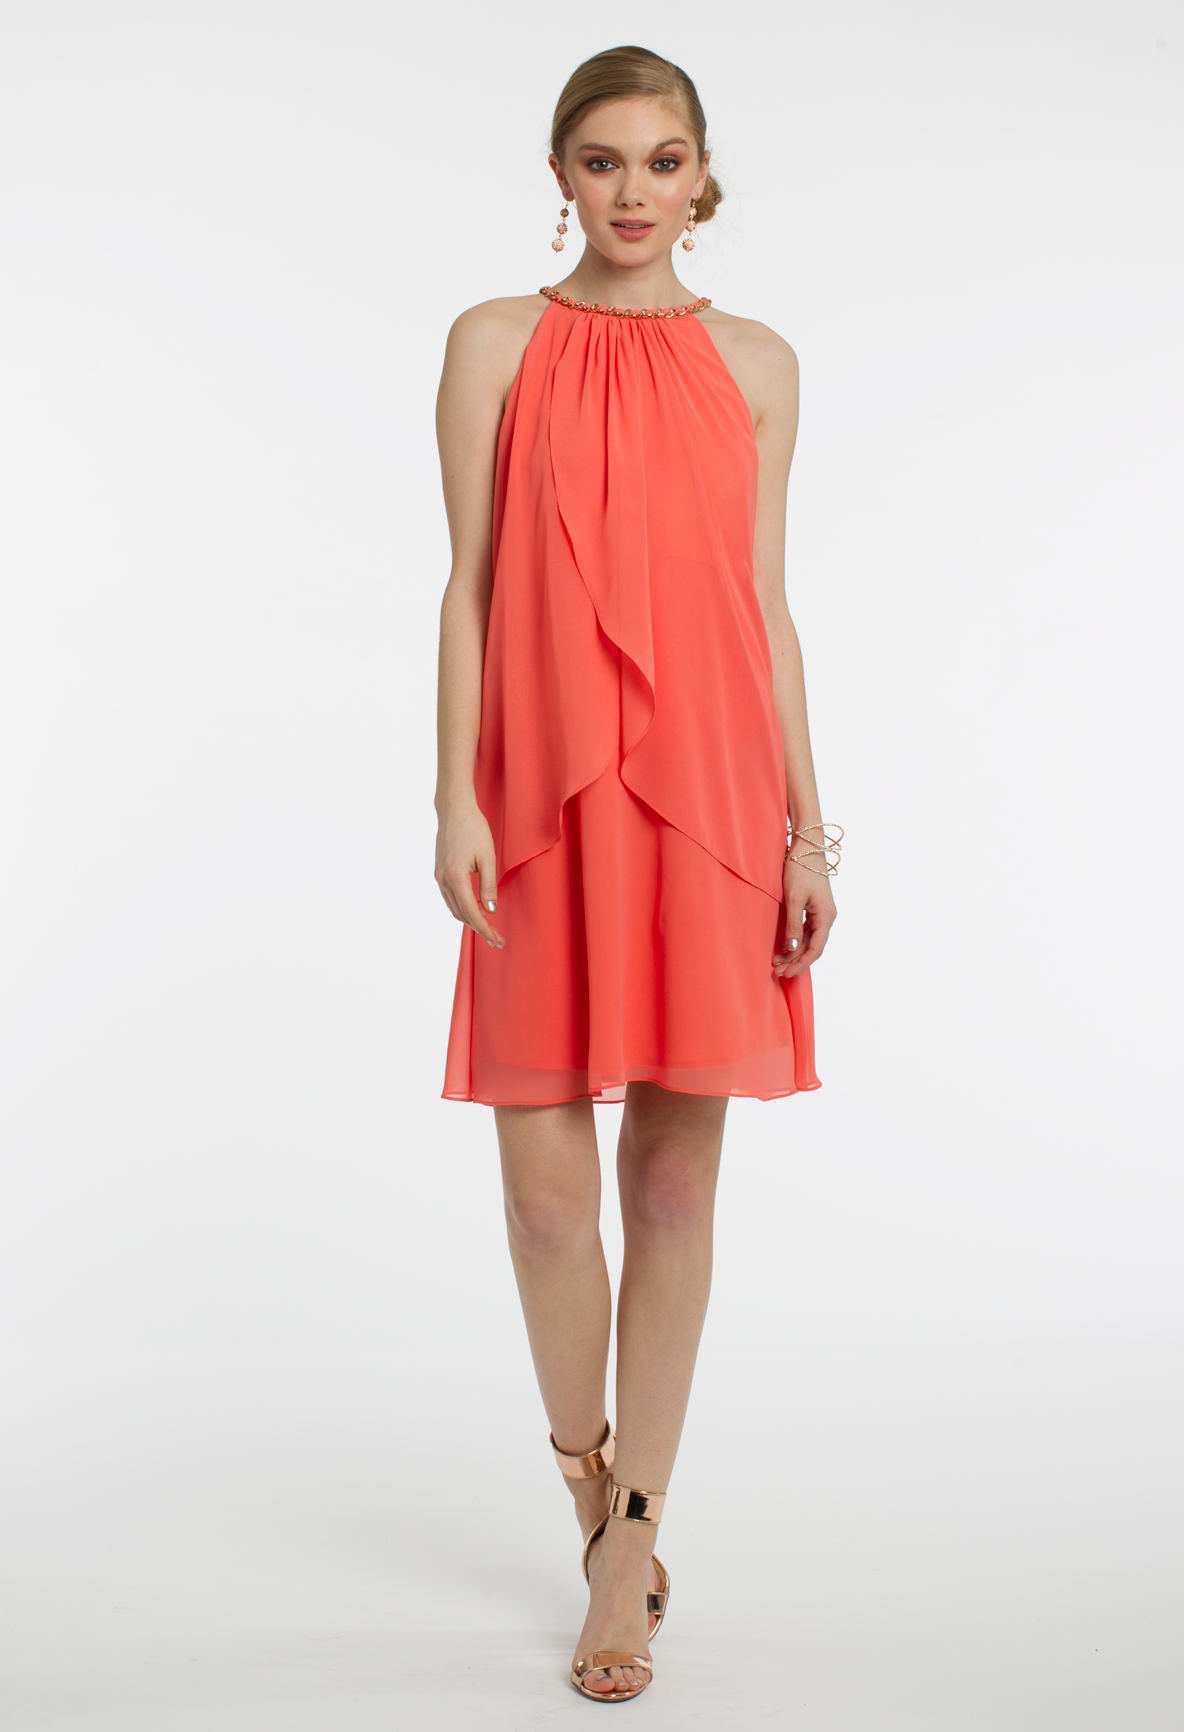 Bring a pop of color to any setting with this short cocktail dress